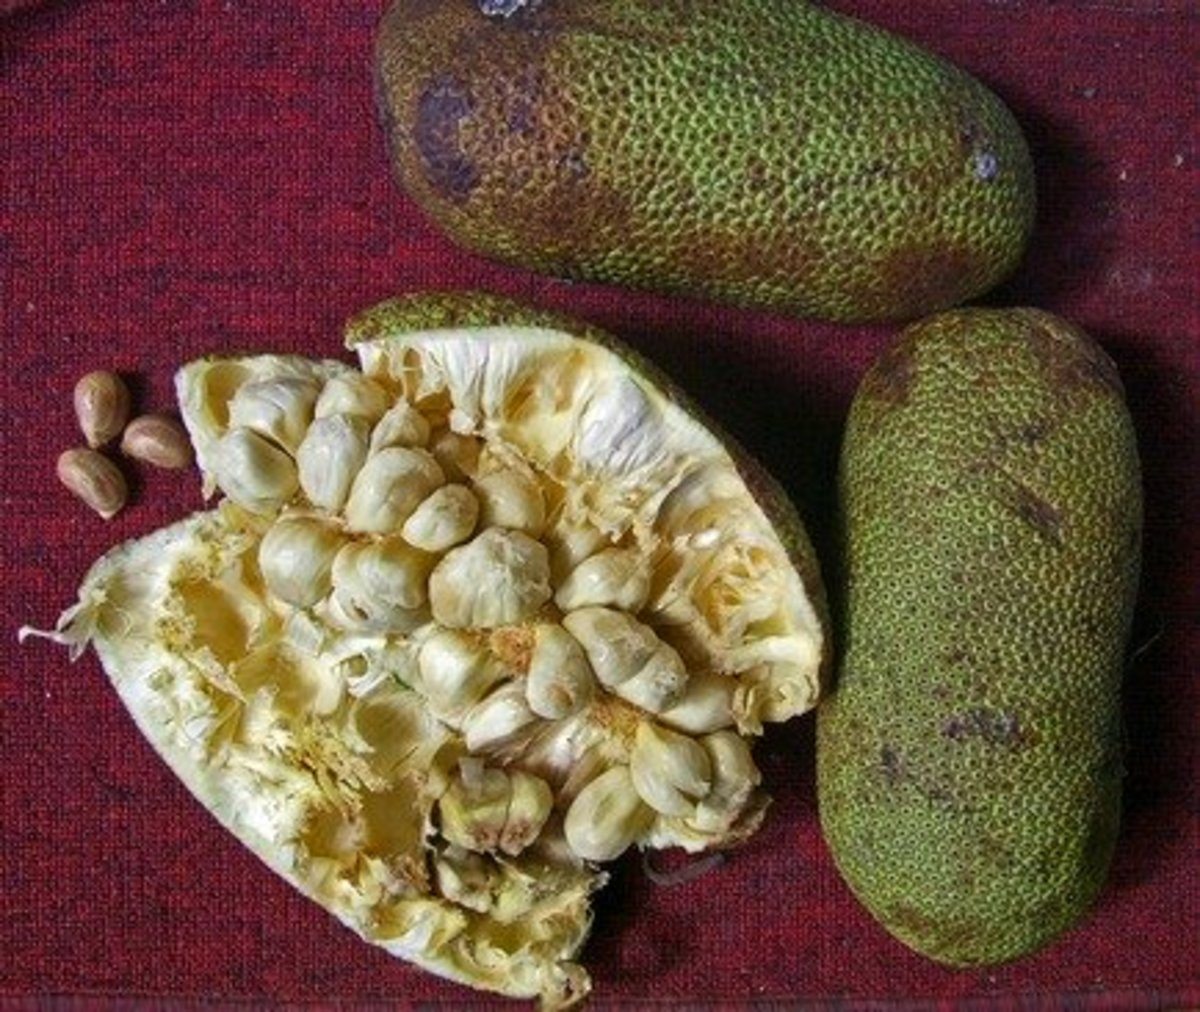 Cempedak fruit, sliced and whole.